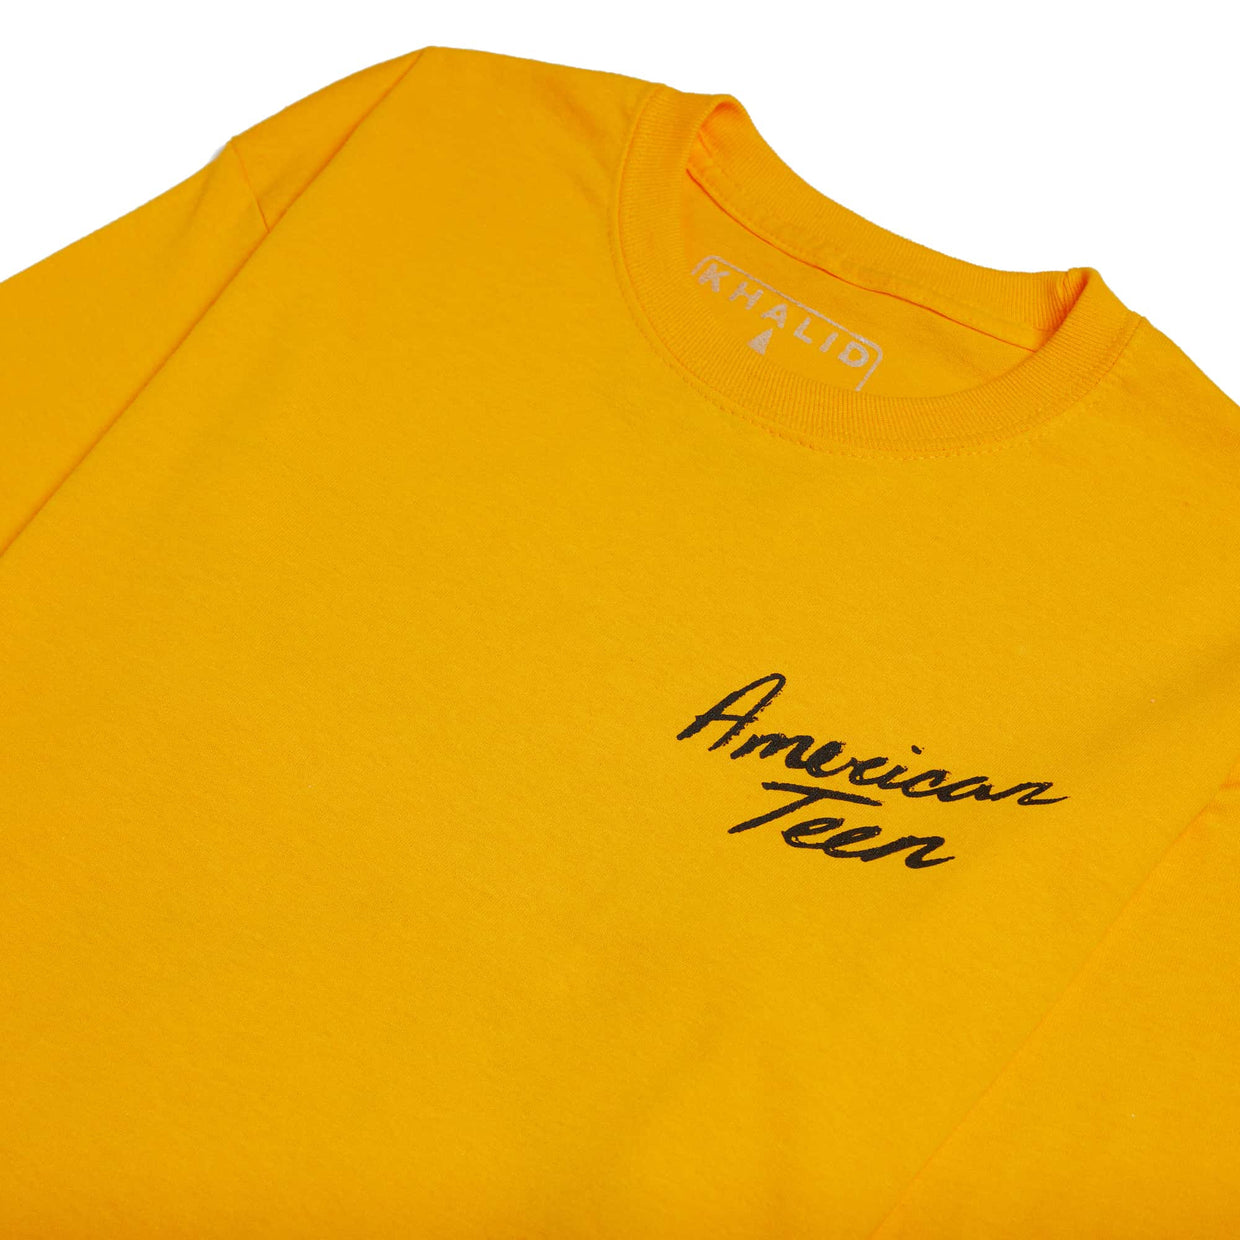 'Austin City Limits' Long Sleeve Tee